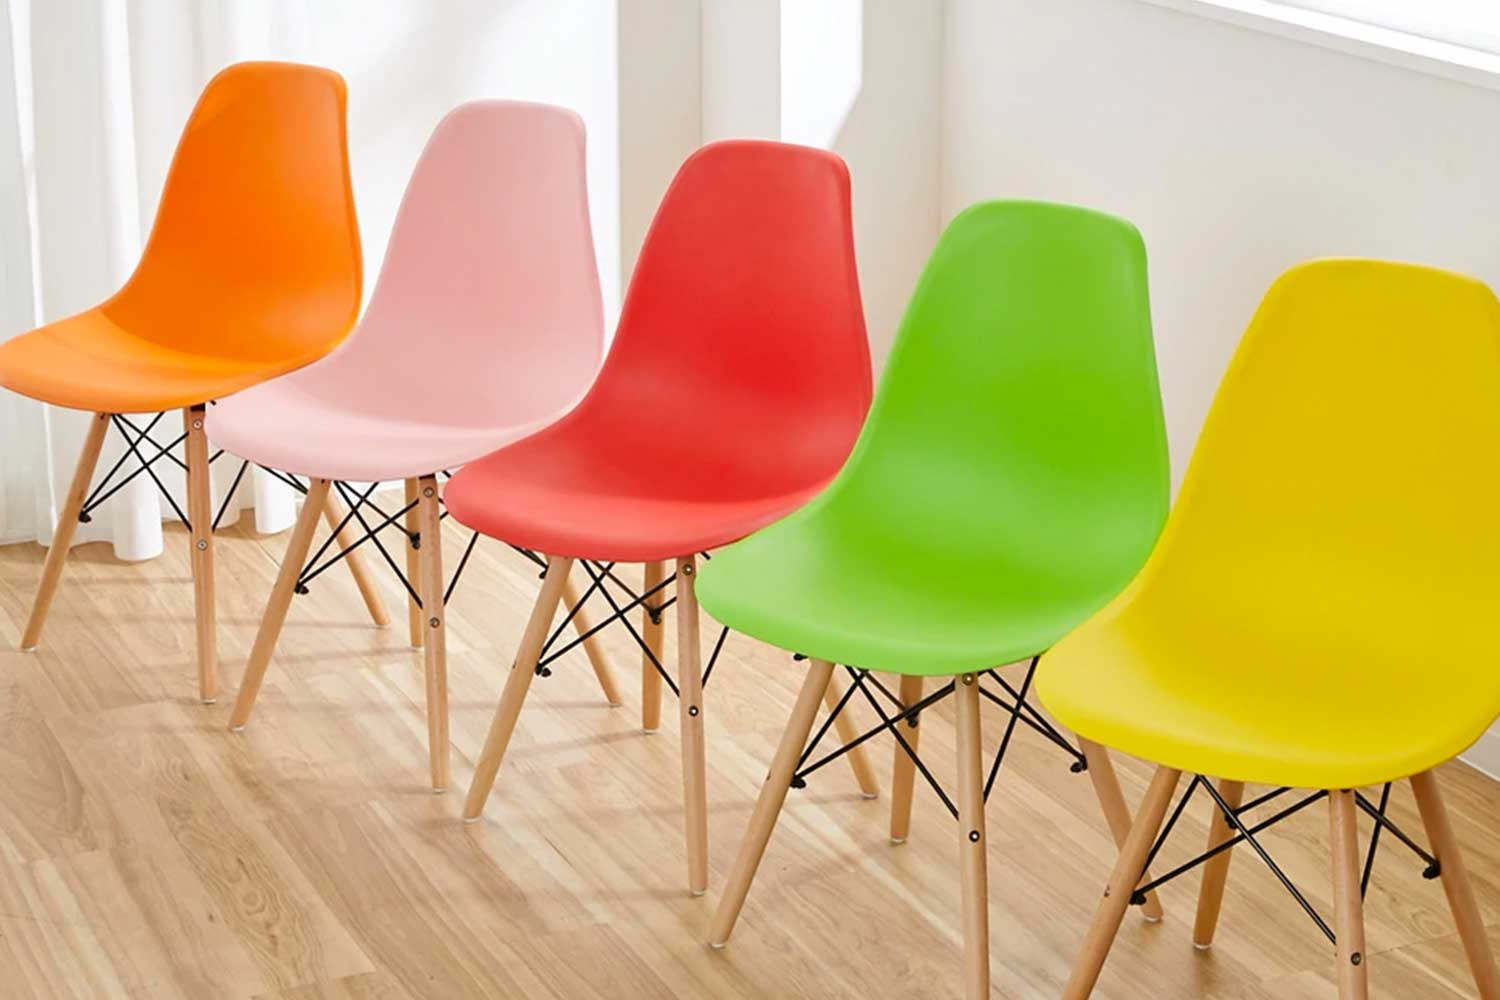 HermanMiller Eames Shell chair